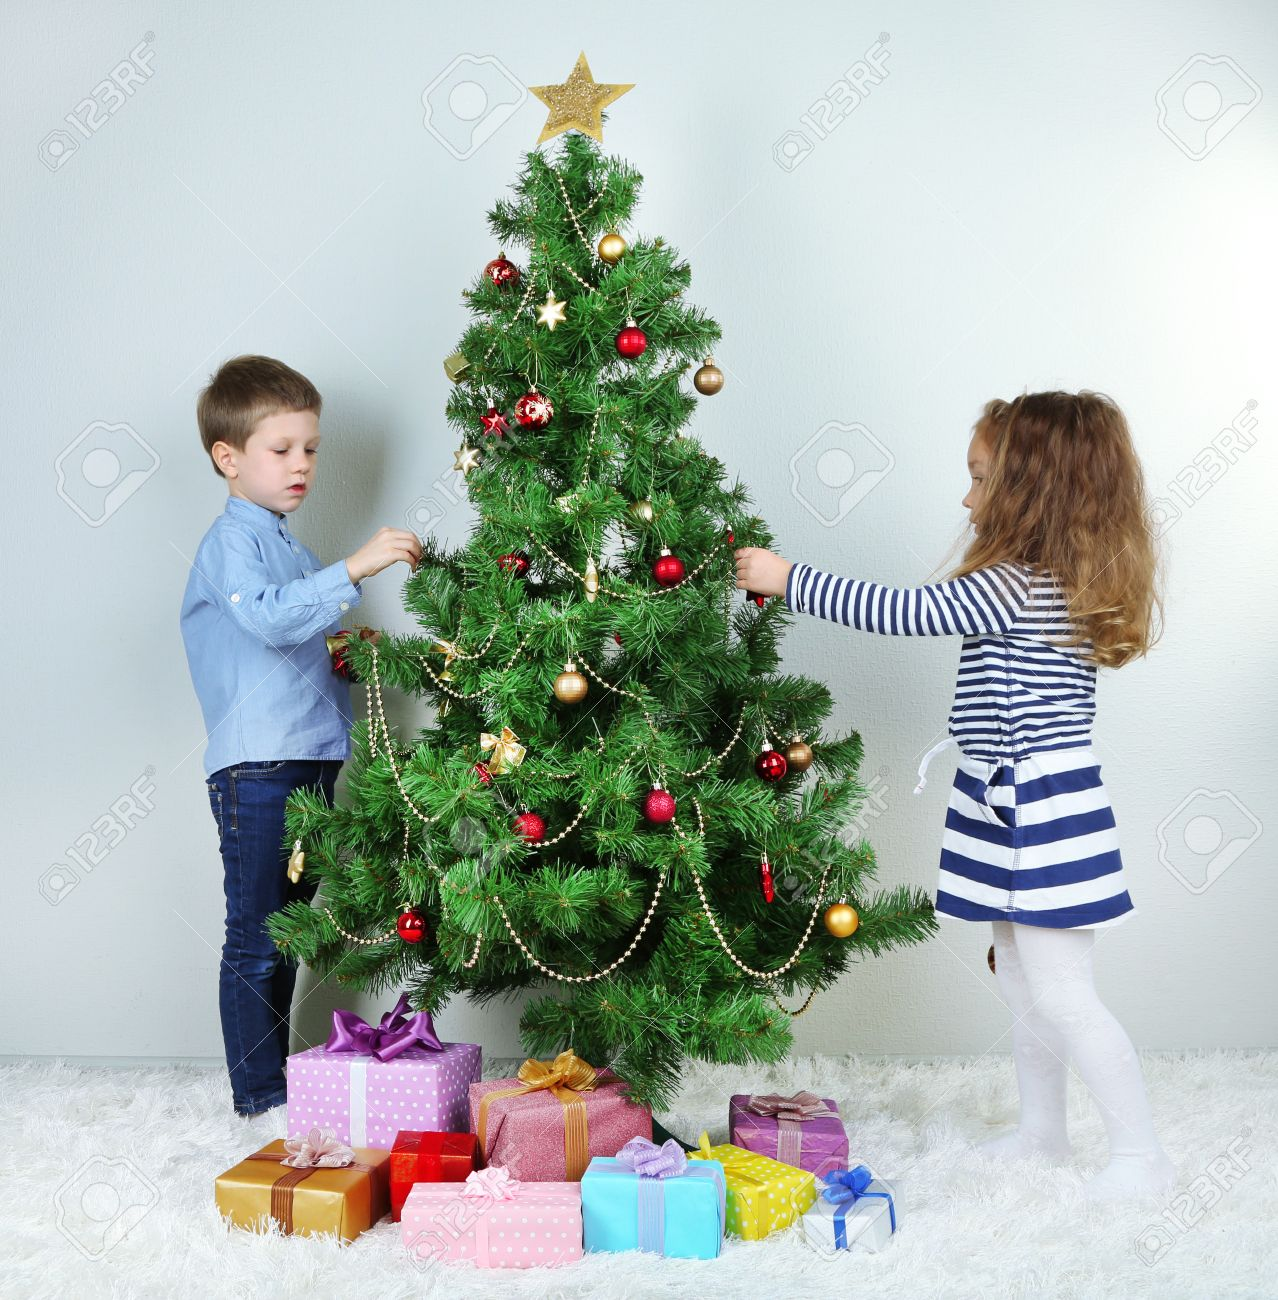 Kids Decorating For Christmas kids decorating christmas tree with baubles in room stock photo